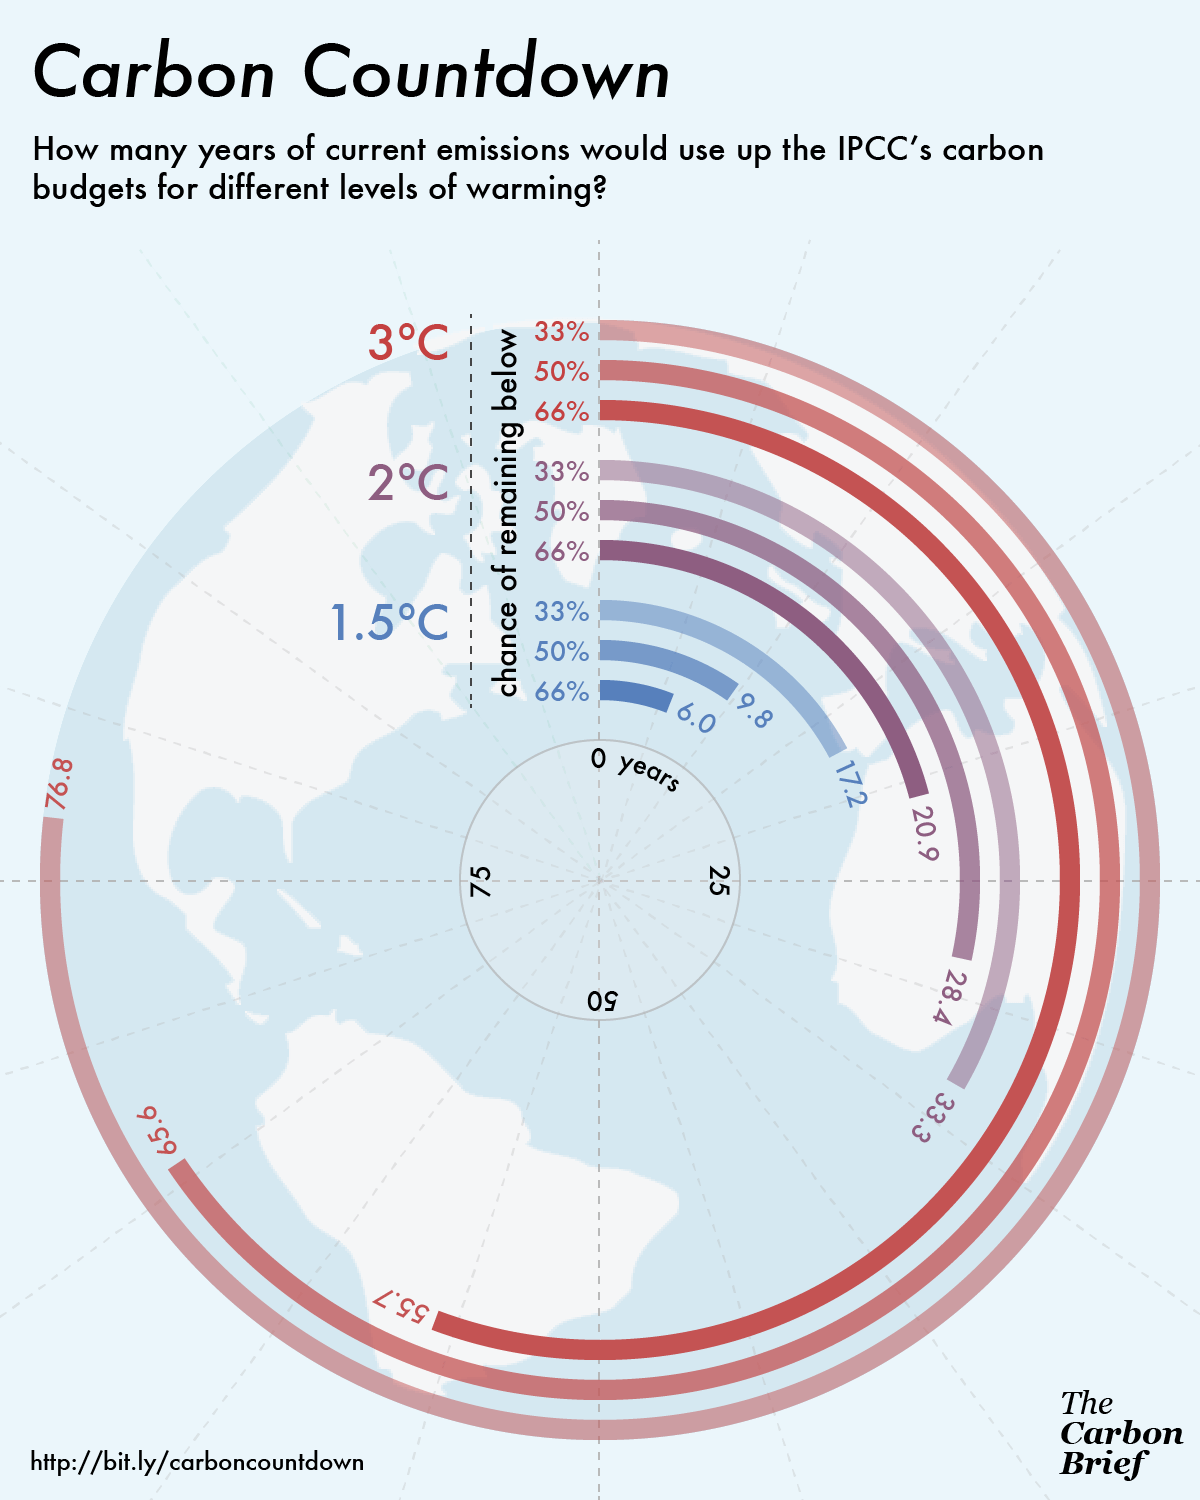 Carbon budget countdown infographic for different levels of warming